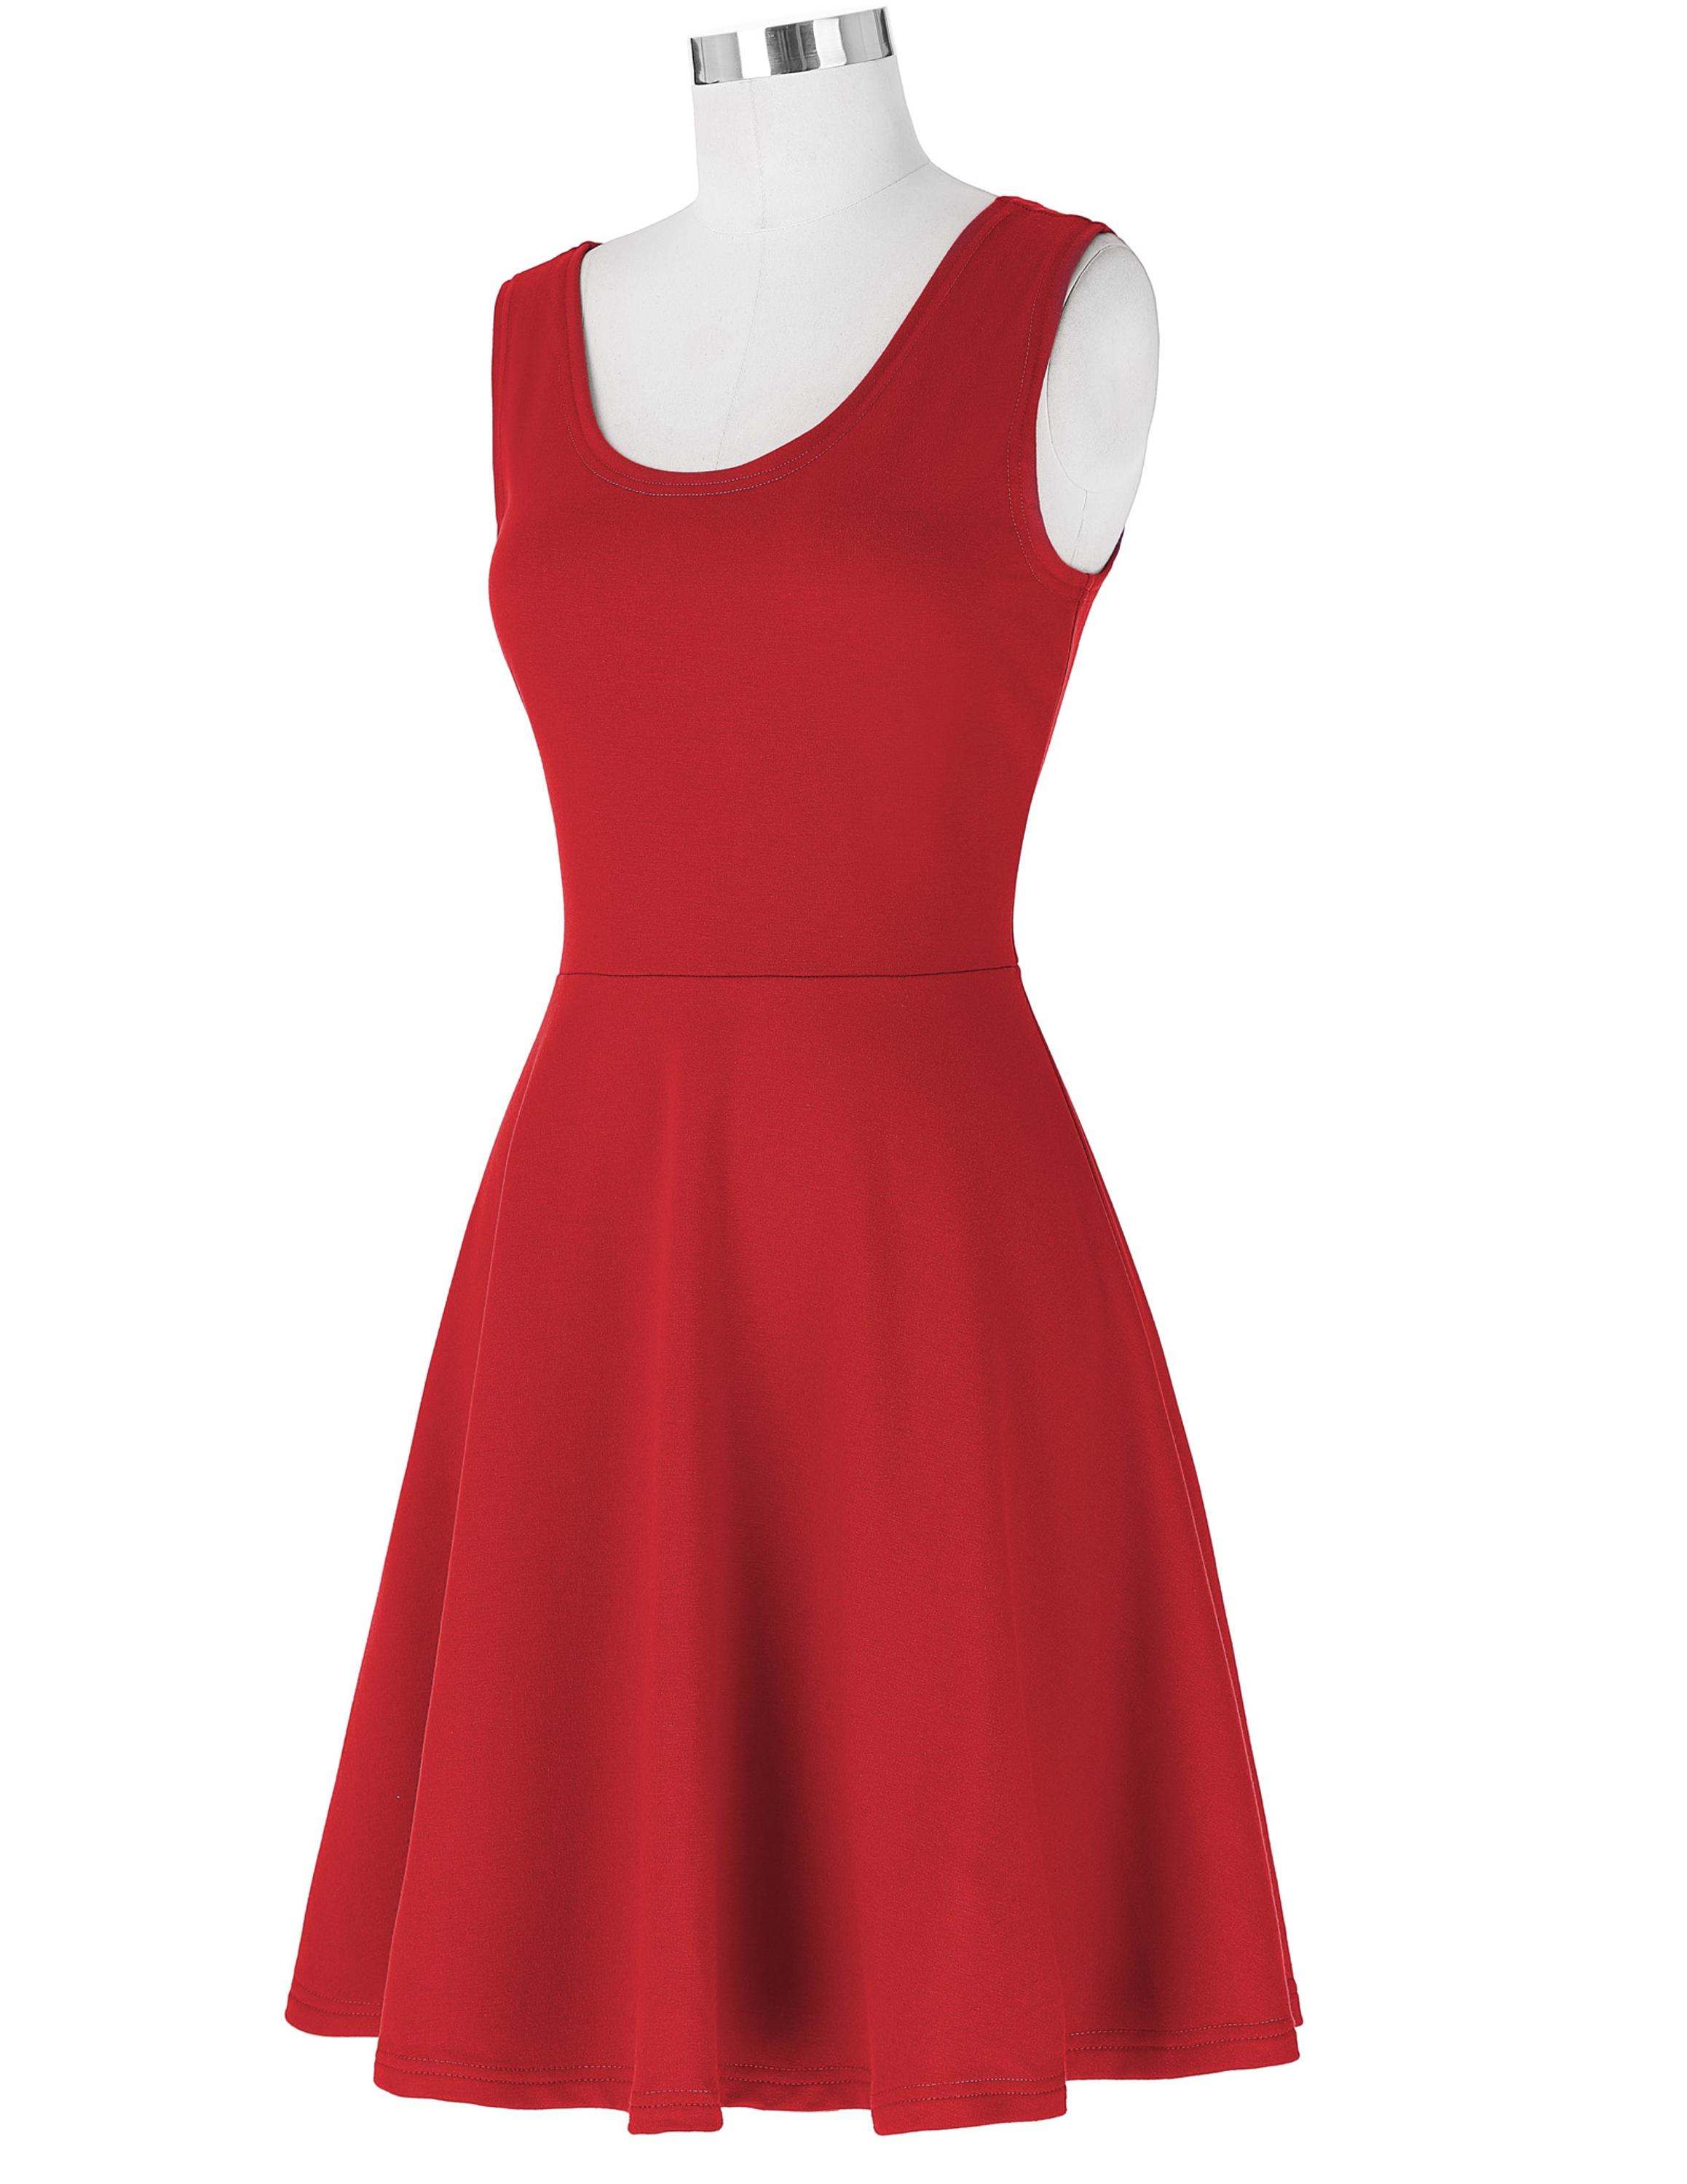 Kate Kasin Women's Stylish & Slim Fit Casual Sleeveless U-Neck Tank Red Summer Dress KK000487-2